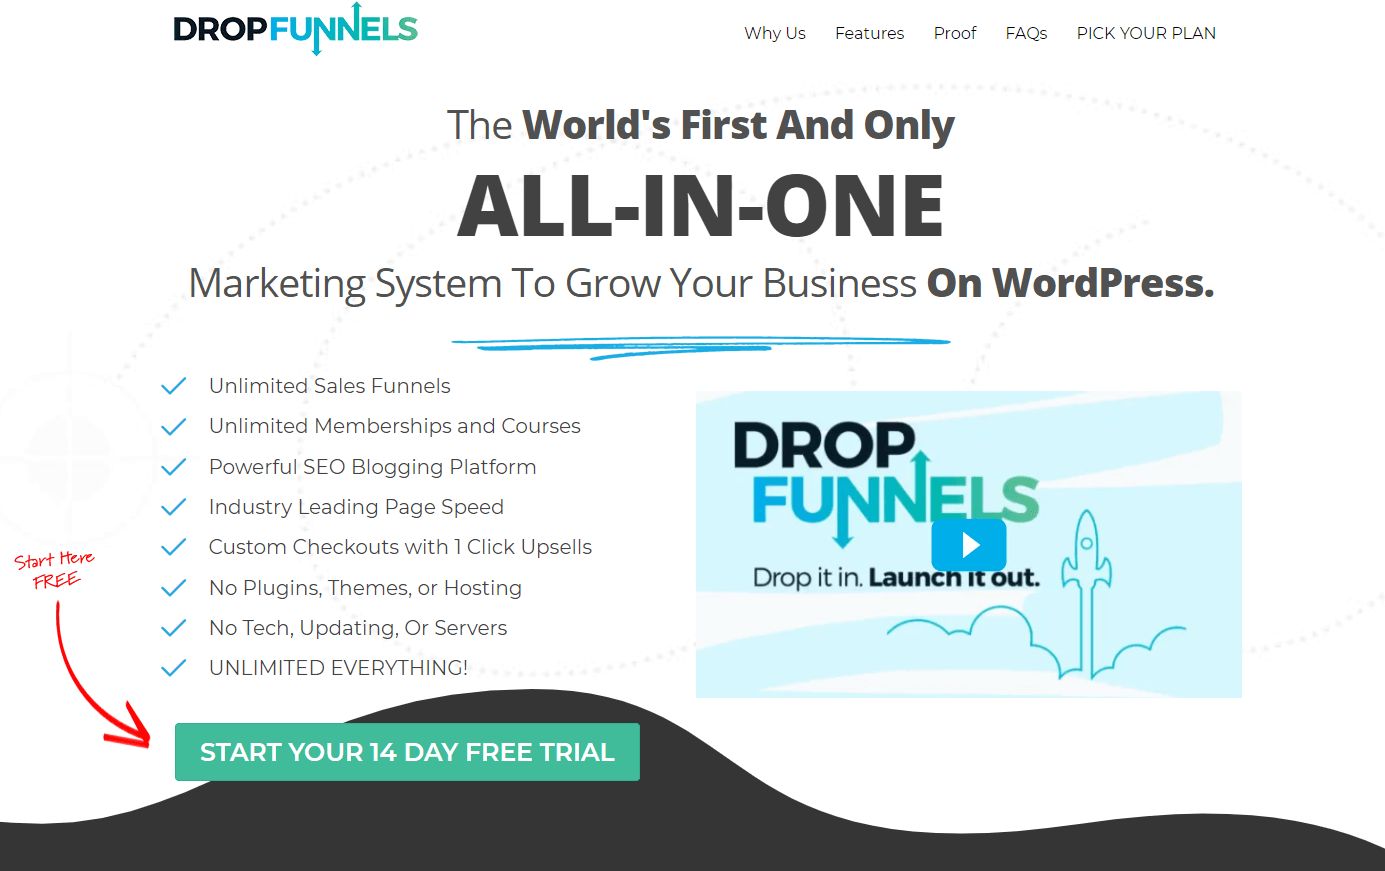 Dropfunnels Homepage Screenshot